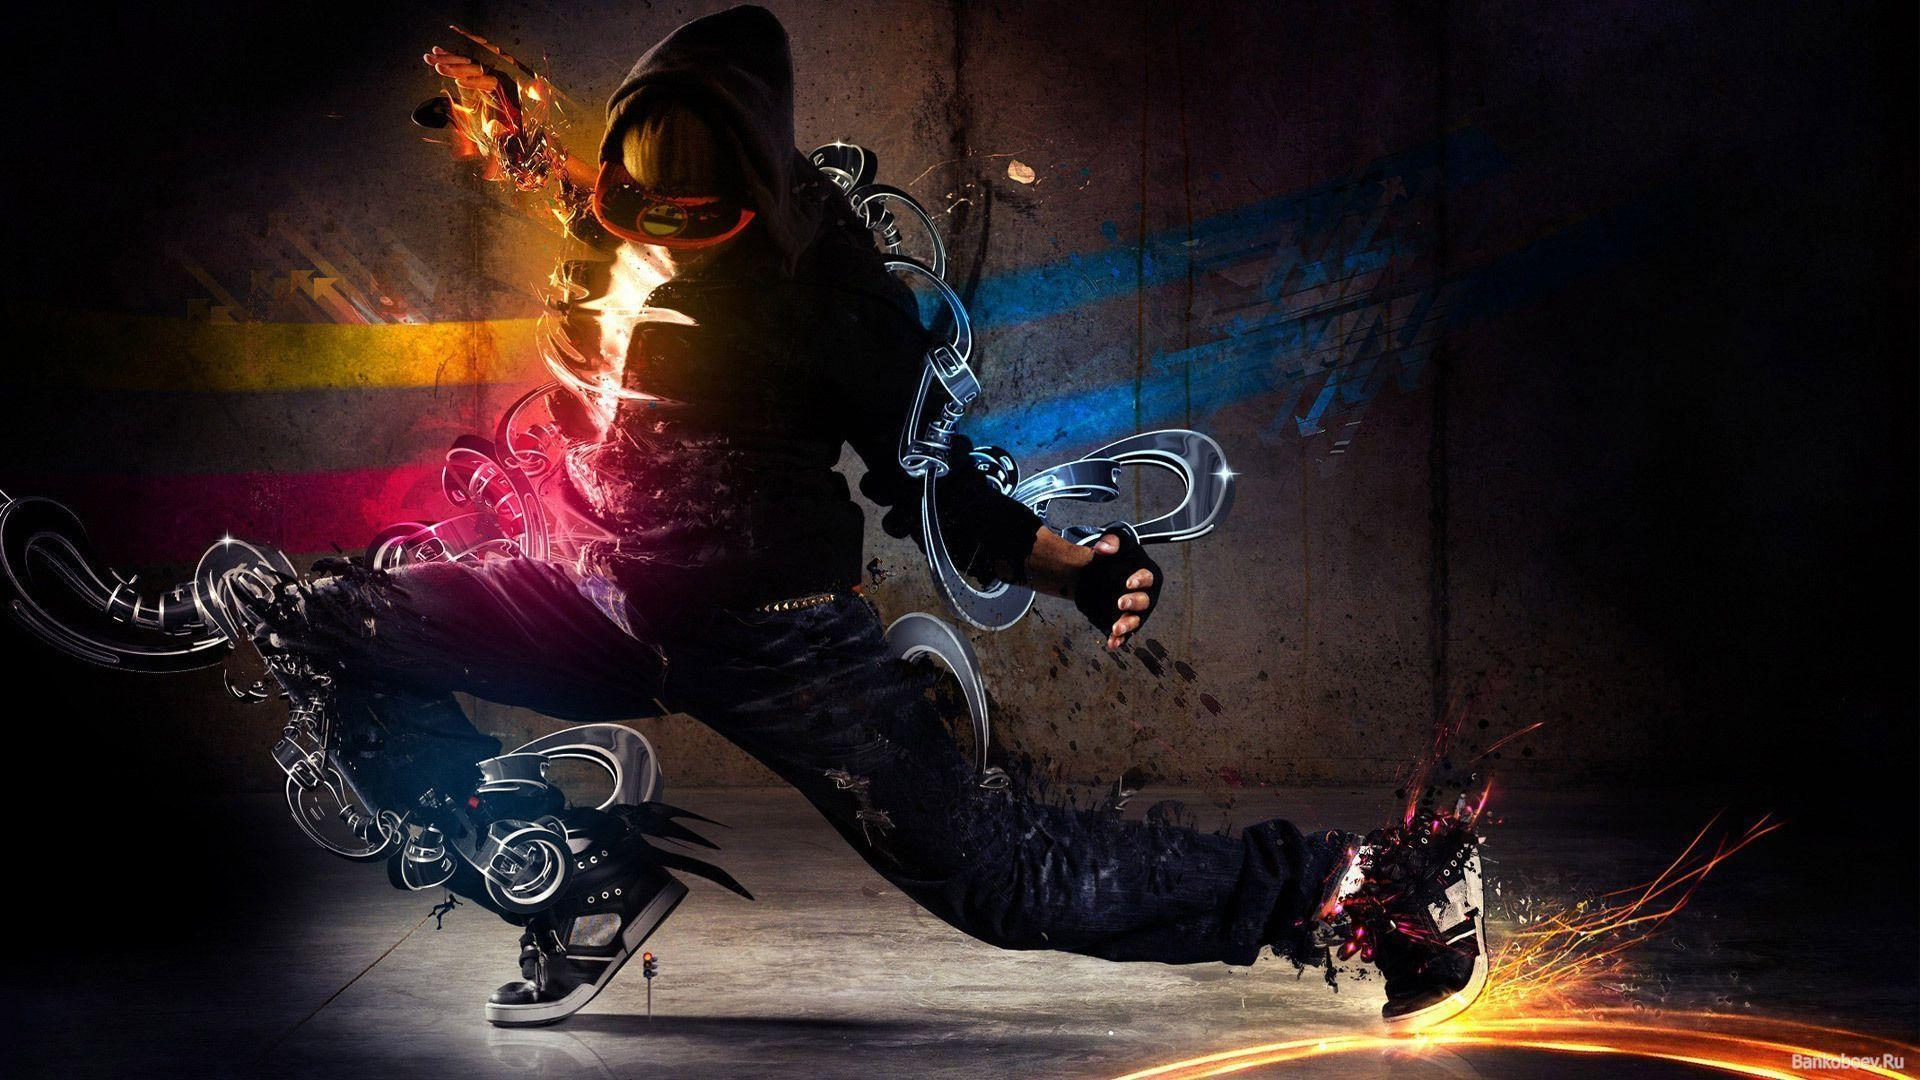 Break dance wallpapers wallpaper cave for M wallpaper 3d